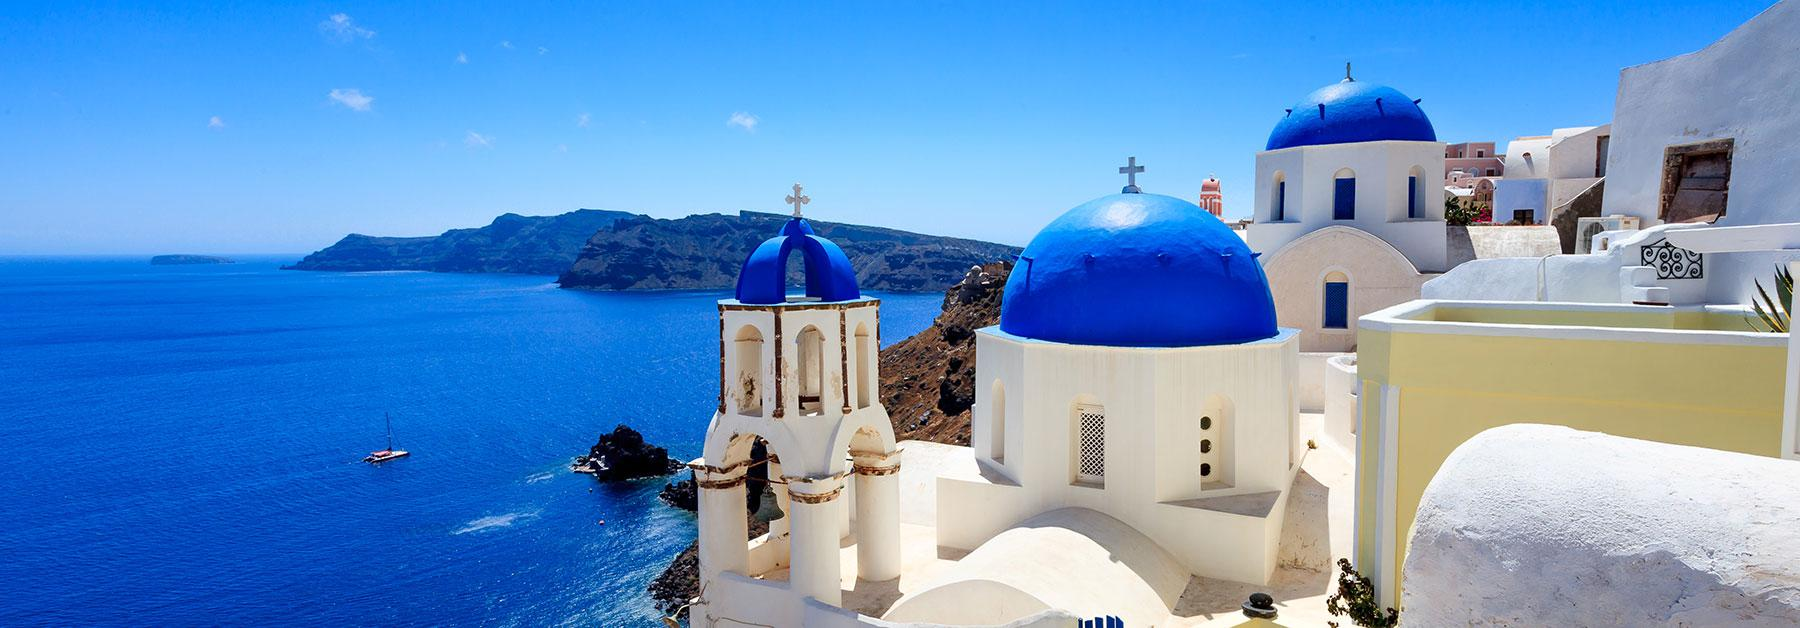 Greece Vacations With Airfare Trip To Greece From Gotoday - Greece tour packages